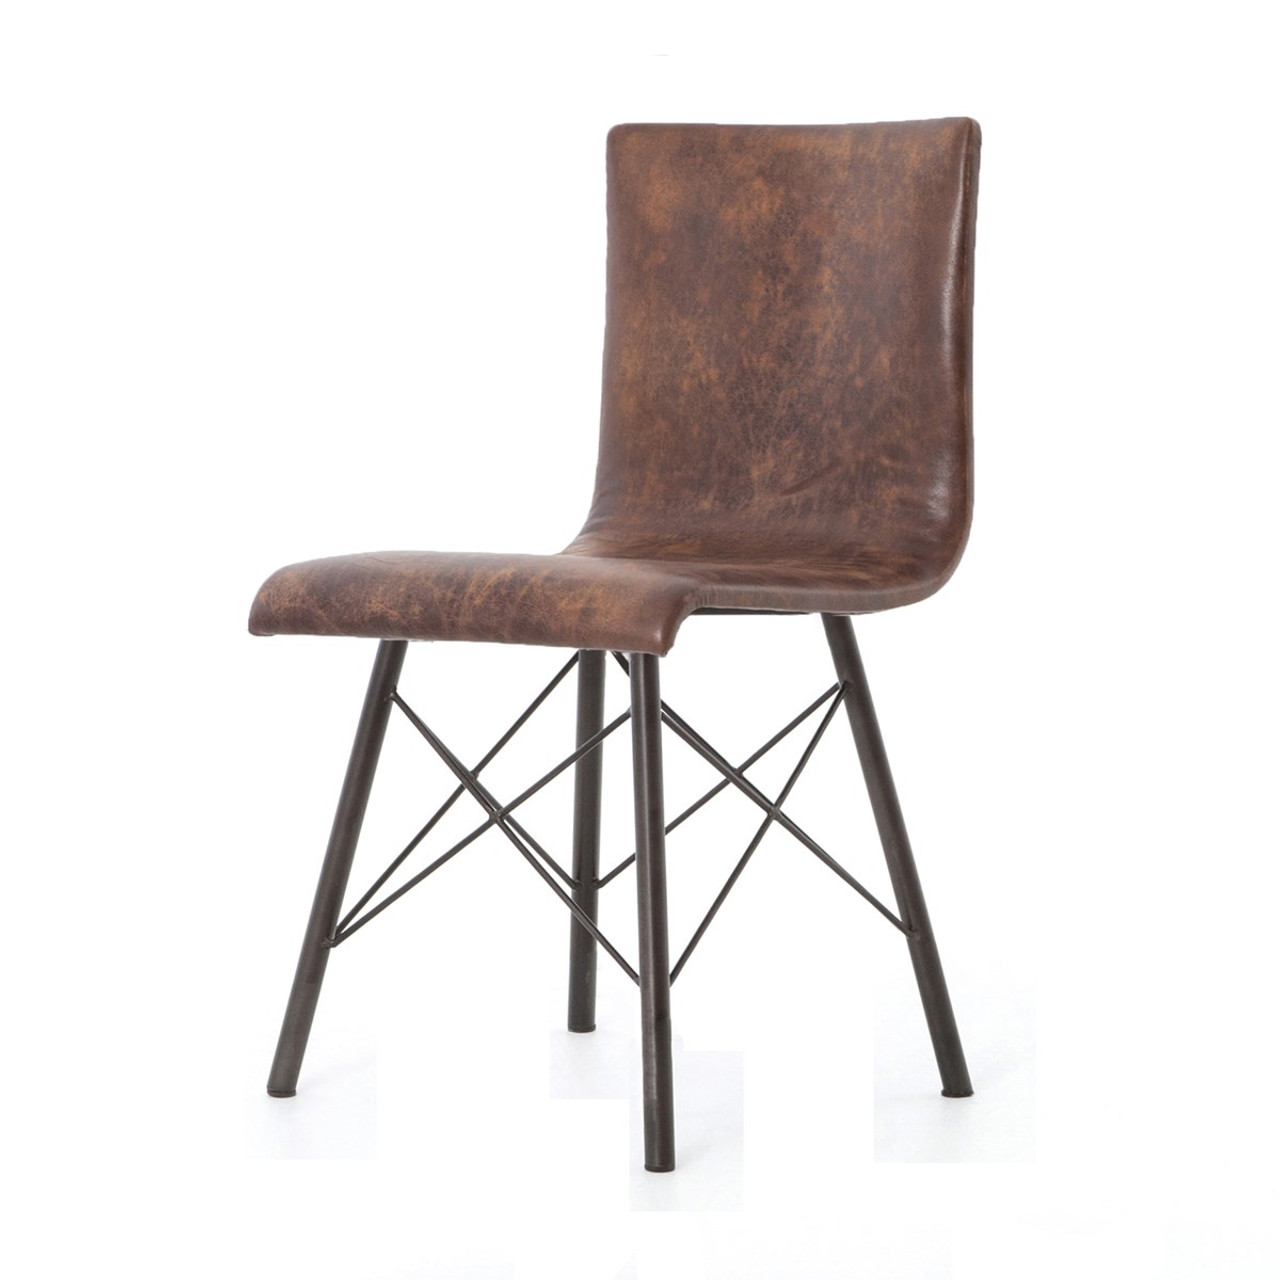 Charmant Diaw Distressed Brown Leather Dining Chair